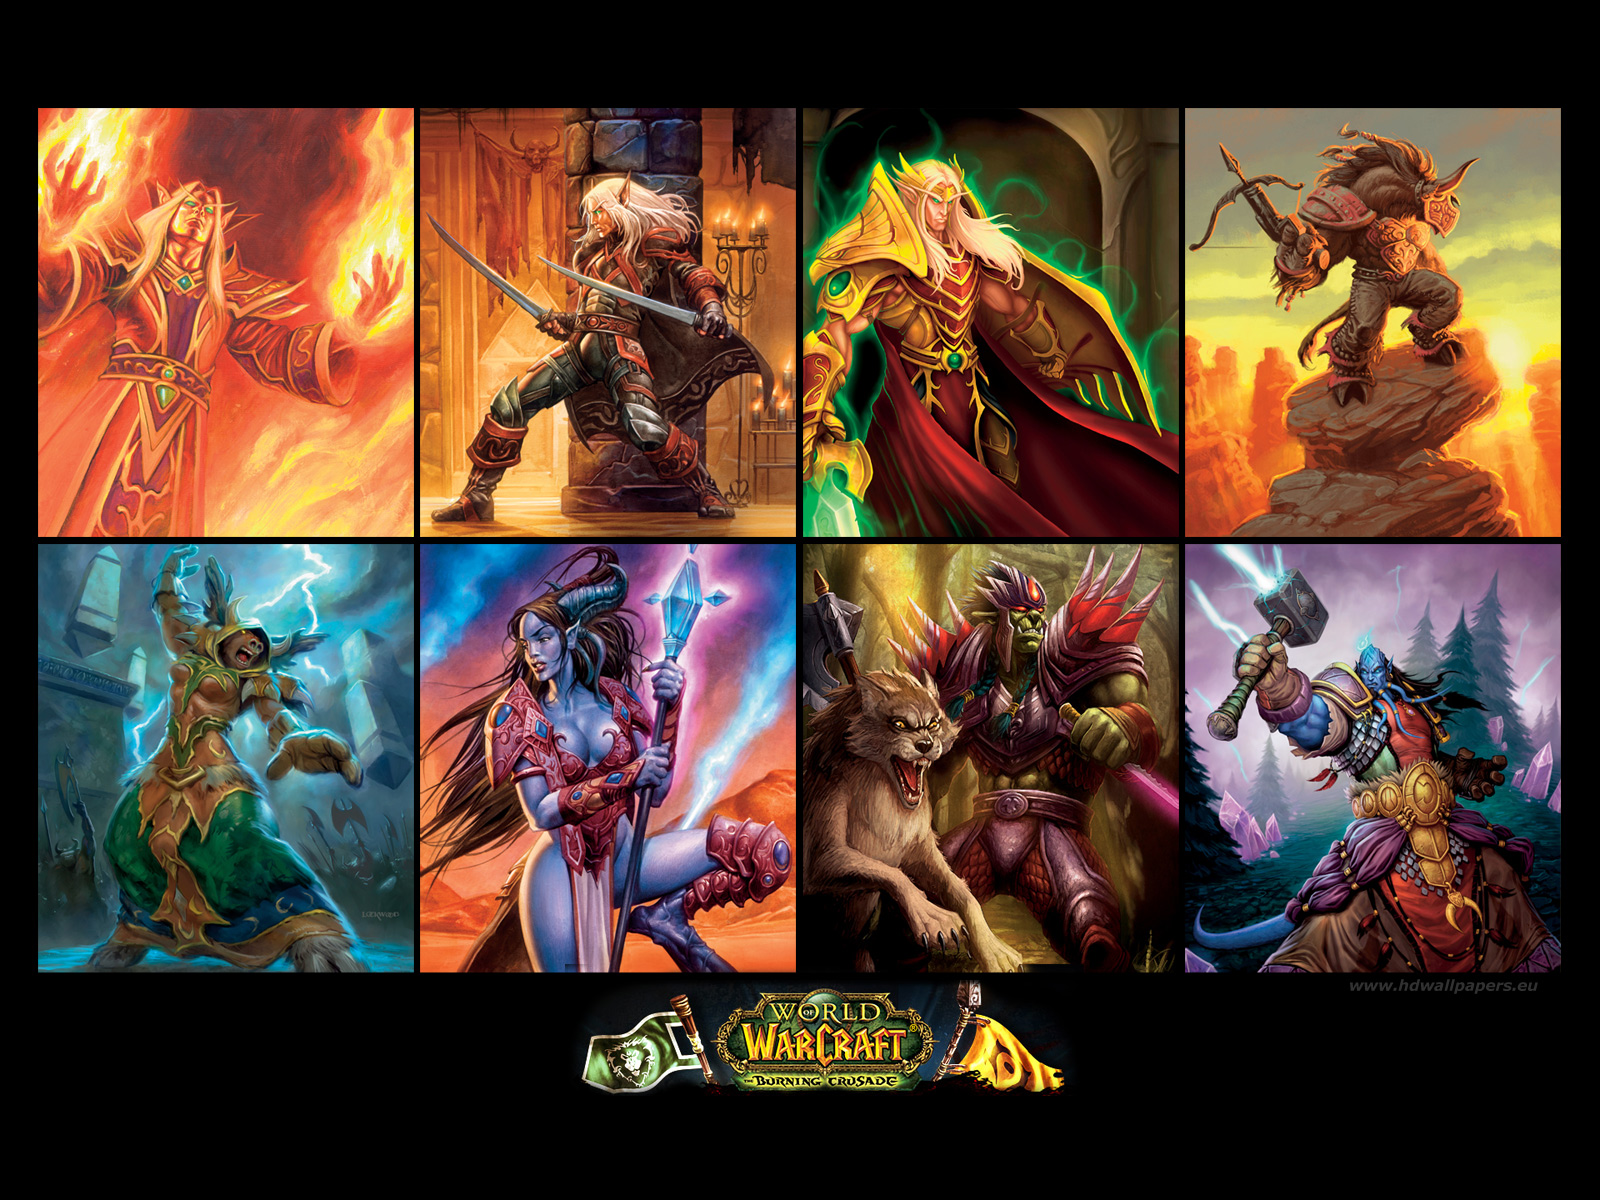 wallpapers-wow-world-of-warcraft-special-1600x1200